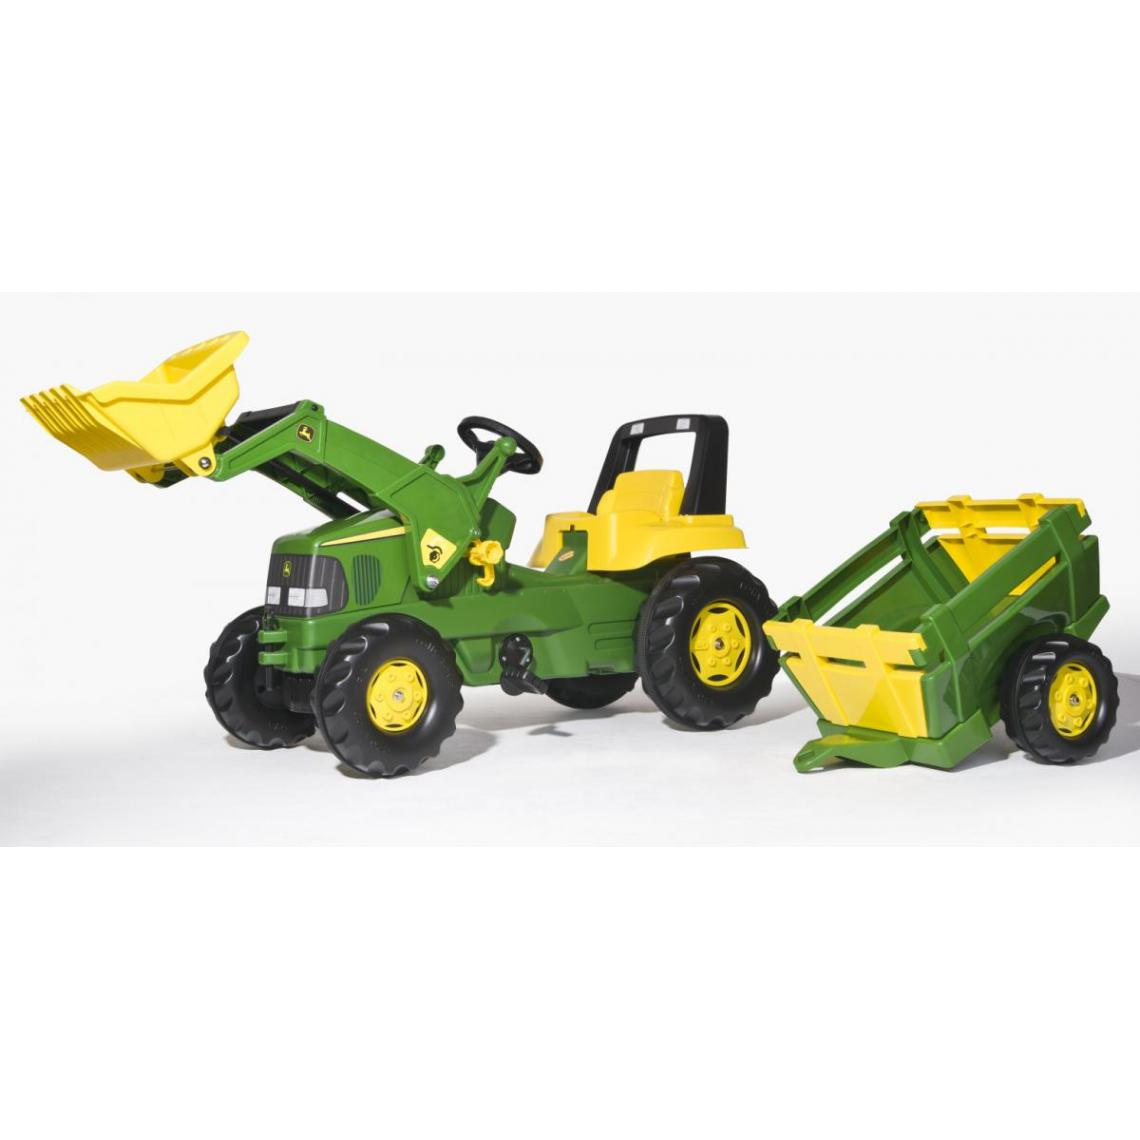 Rolly Toys Rolly Toys Tracteur a Pedale rollyJunior John Deere + remorque